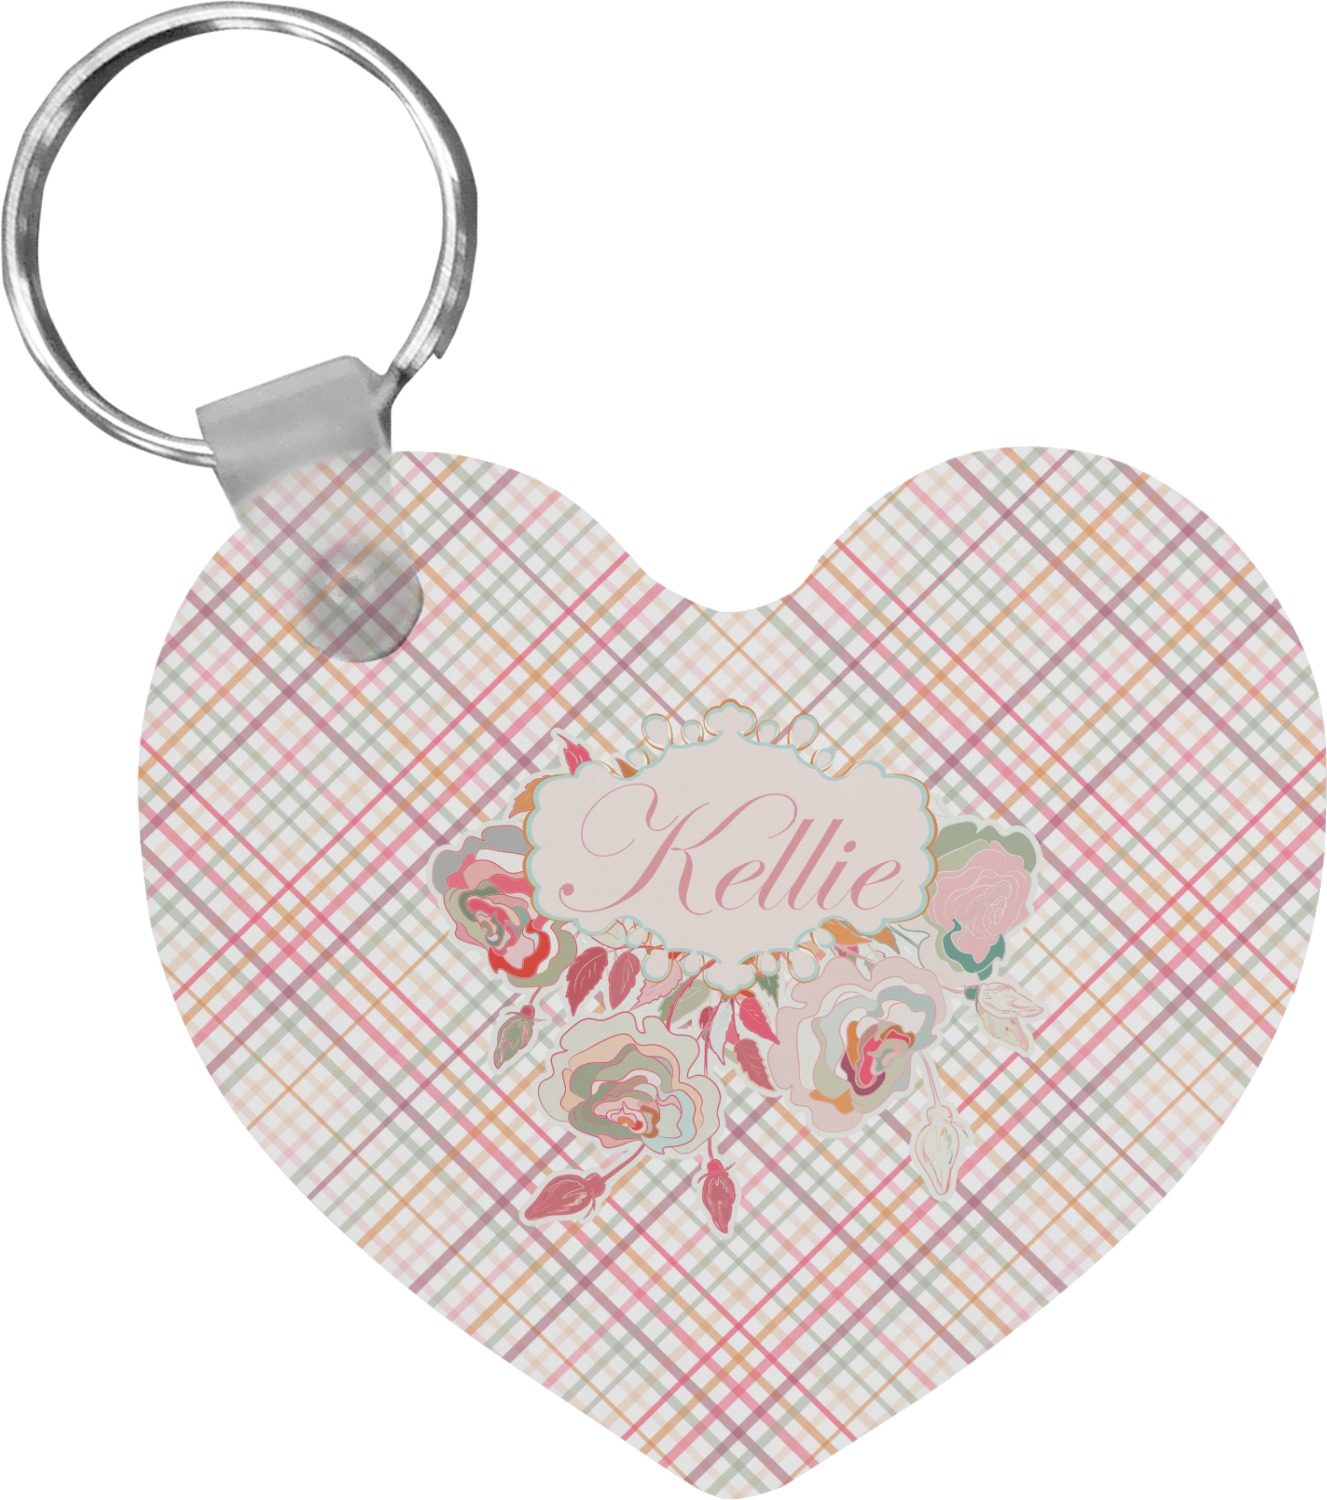 Modern Plaid Floral Heart Keychain Personalized You